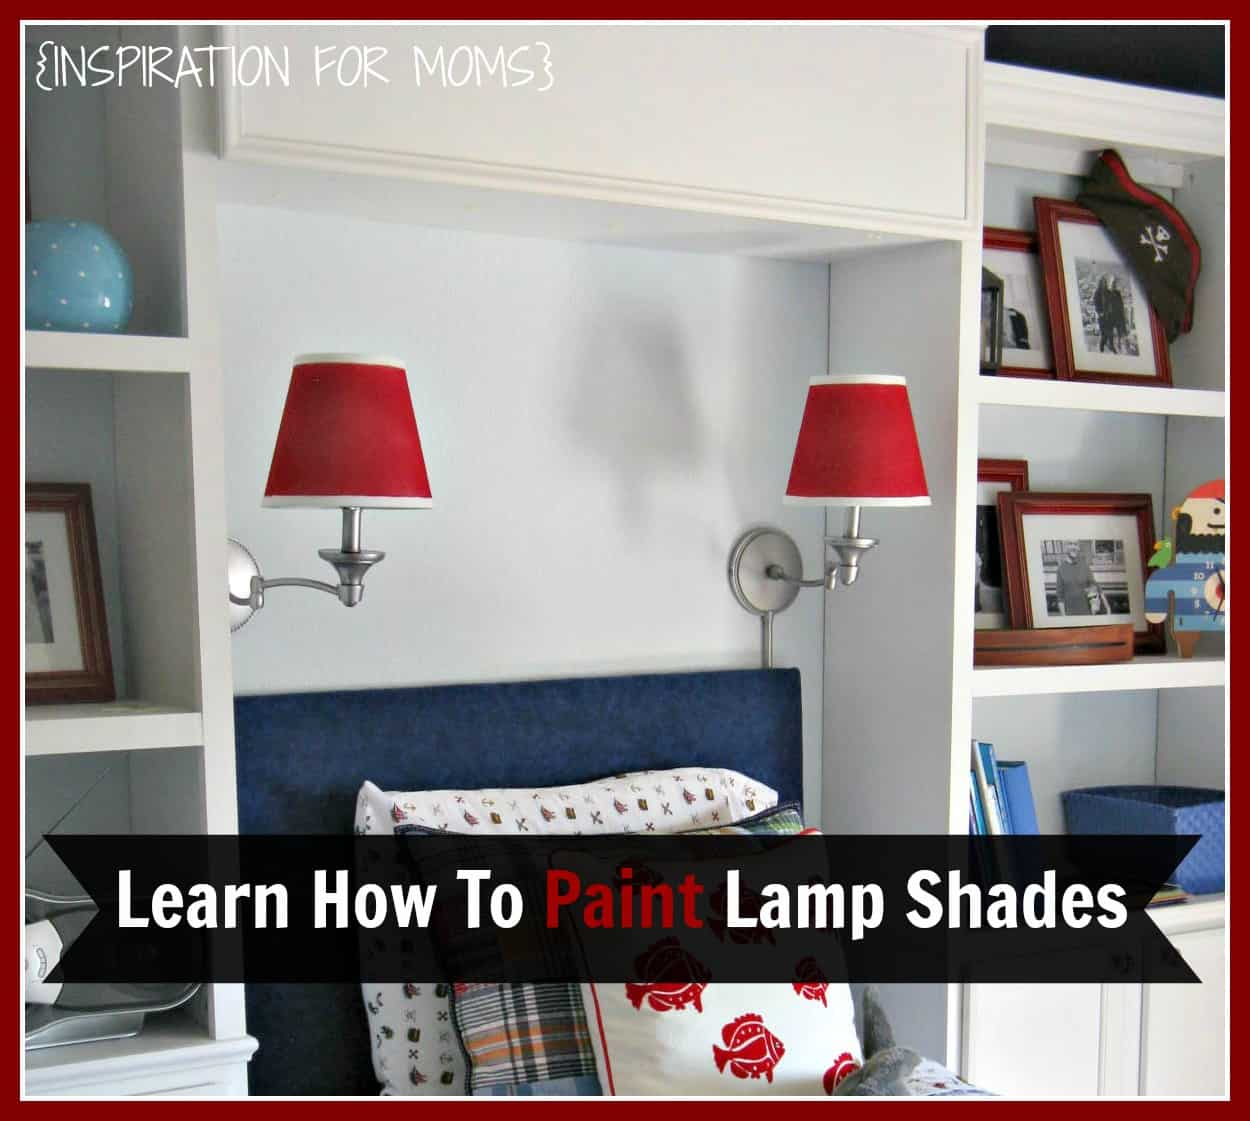 How to Paint Lamp Shades